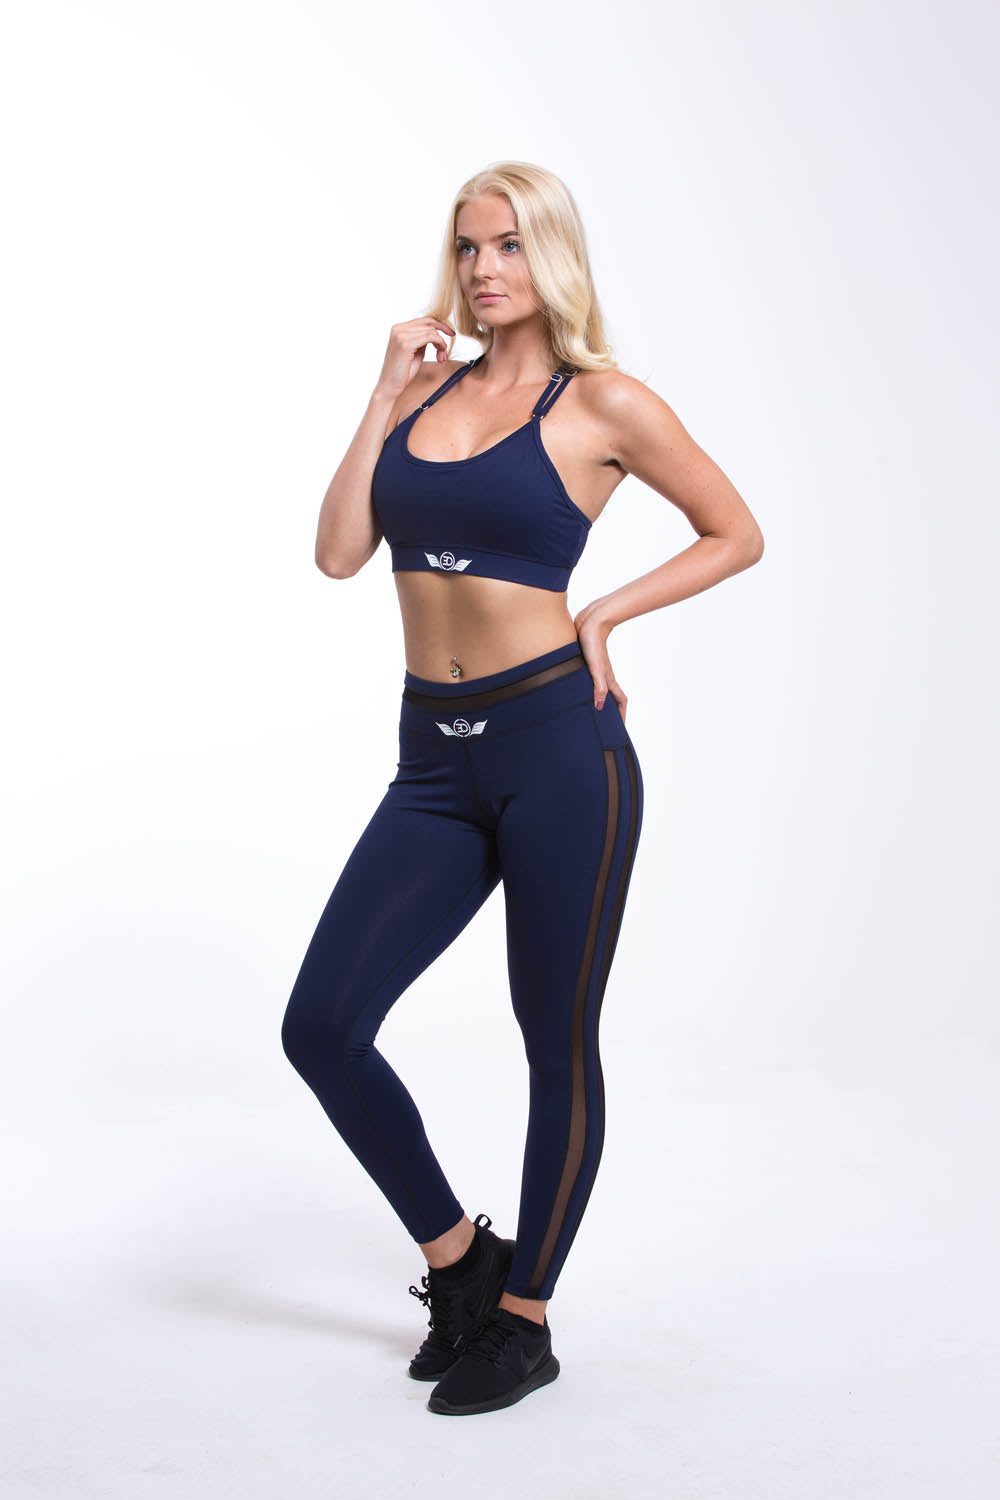 ORION Sports Bra - Navy